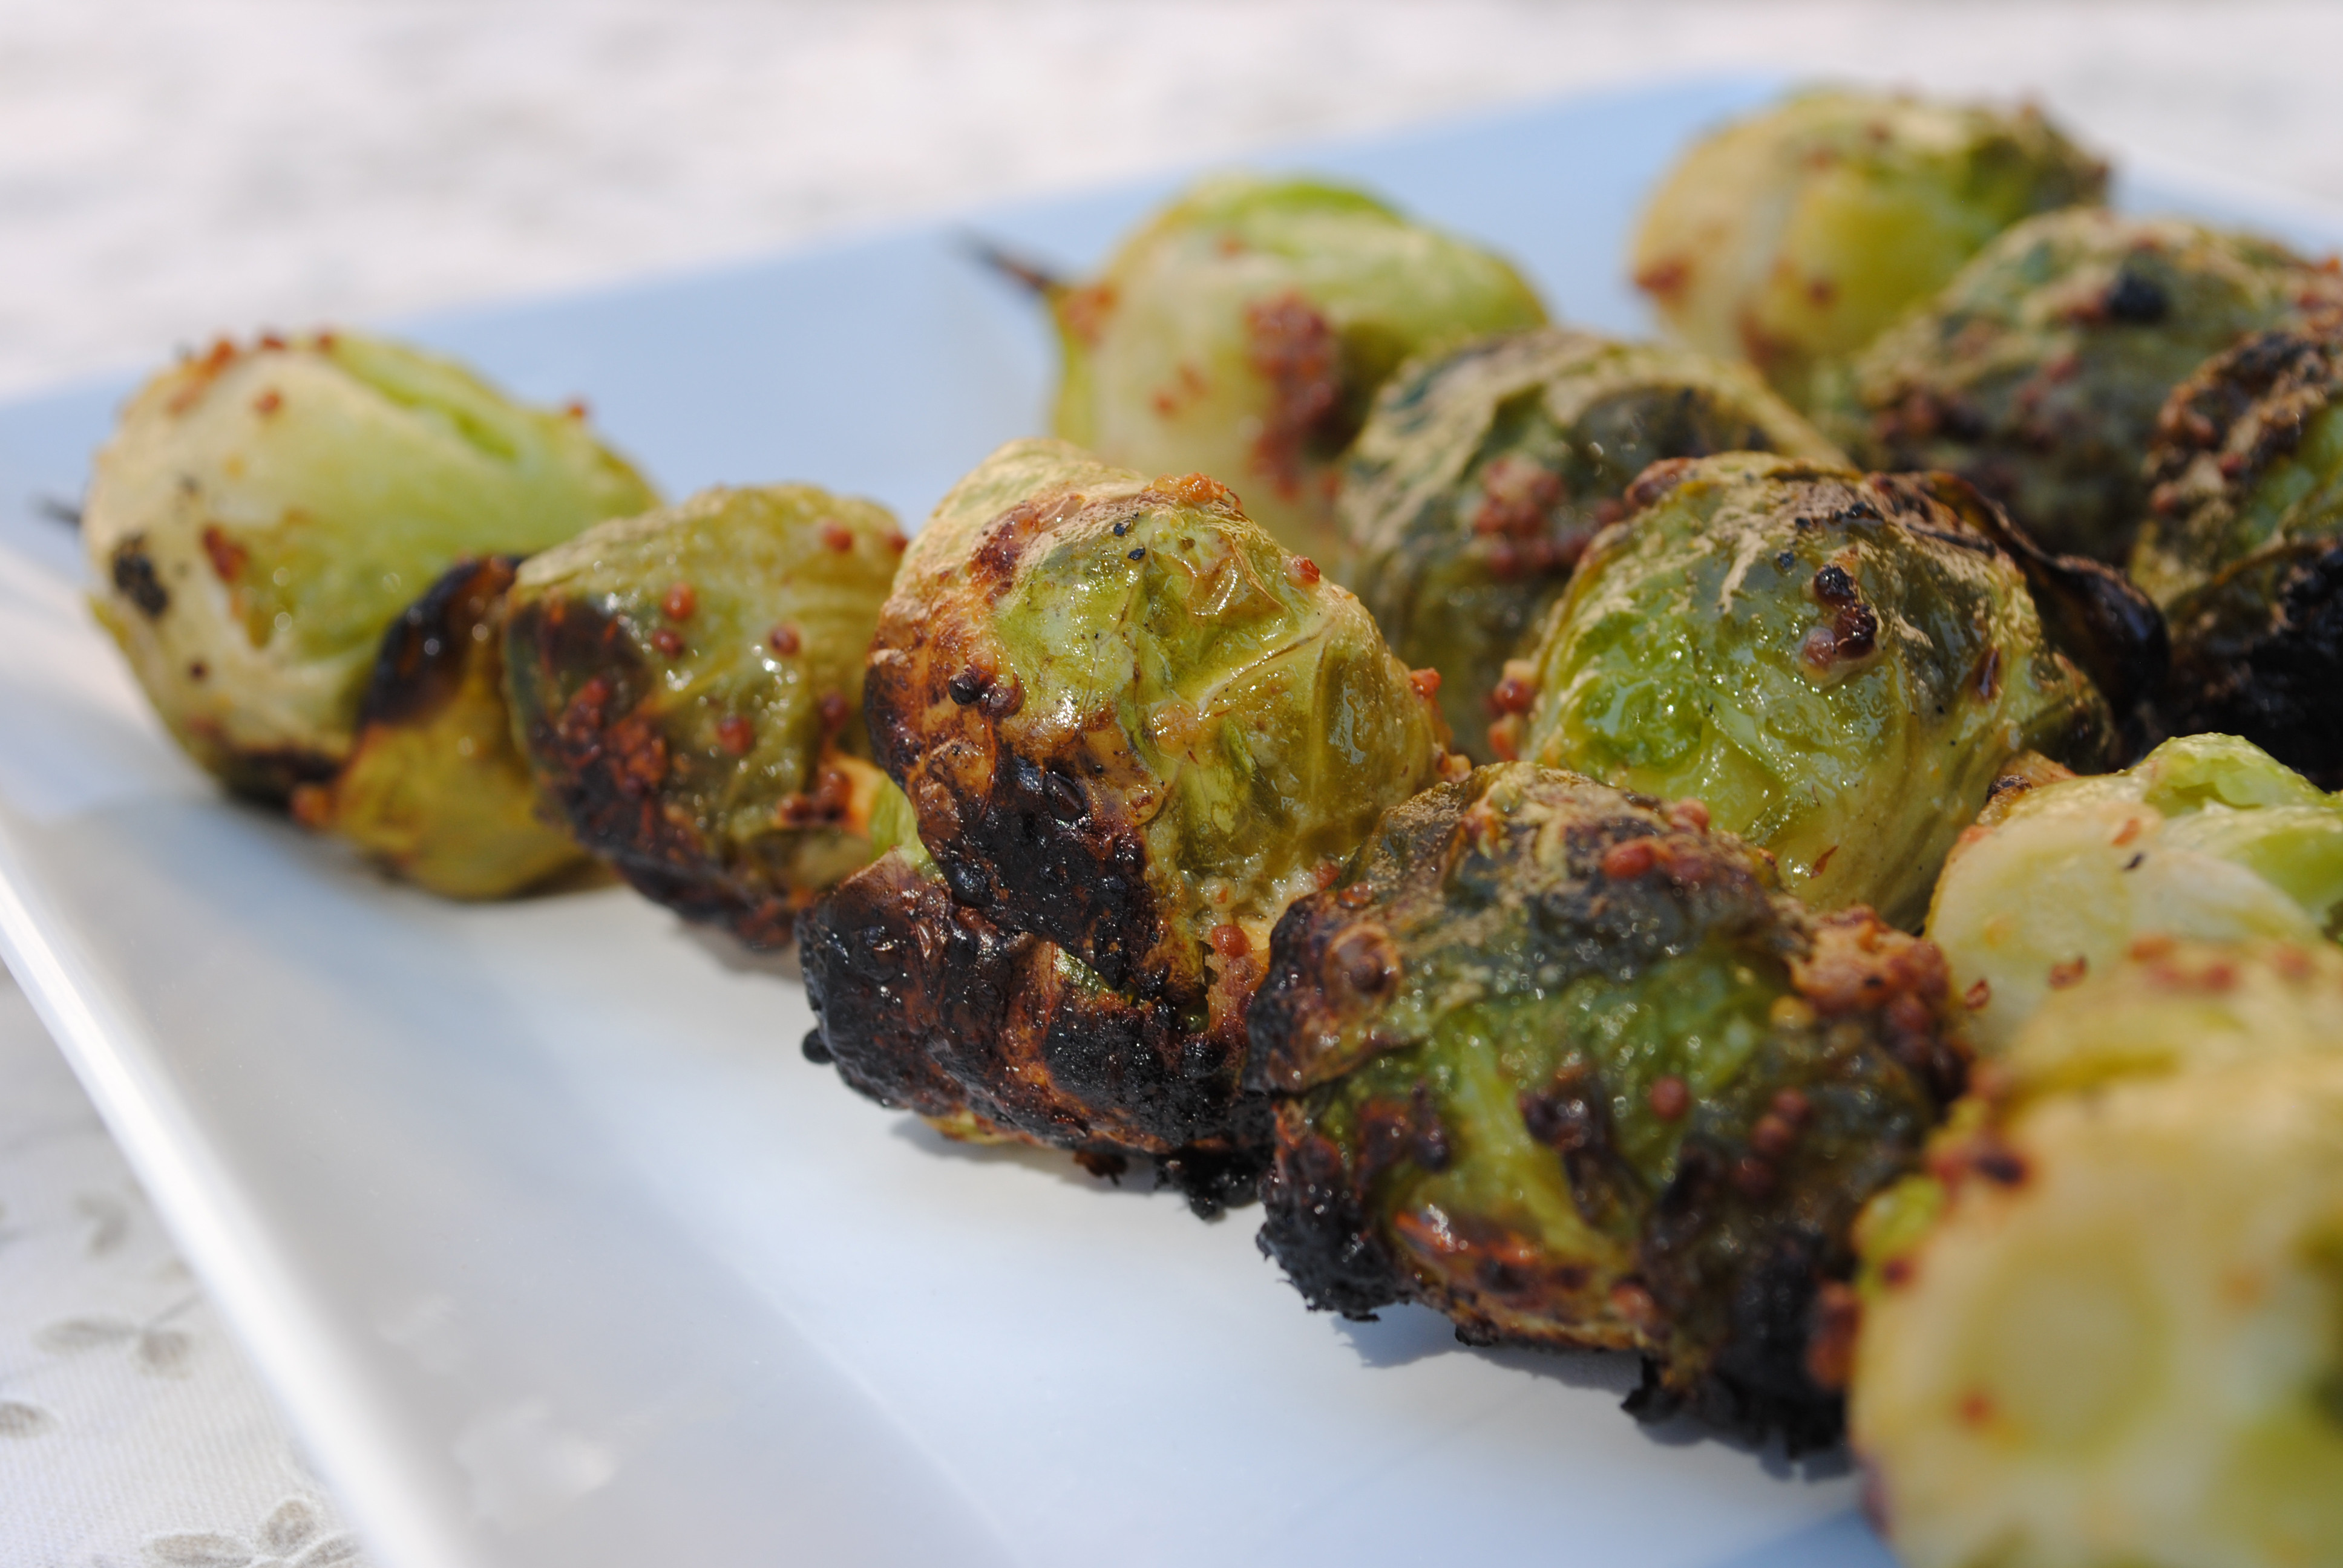 Grilled Brussels Sprouts  Grilled Brussels Sprouts with Whole Grain Mustard